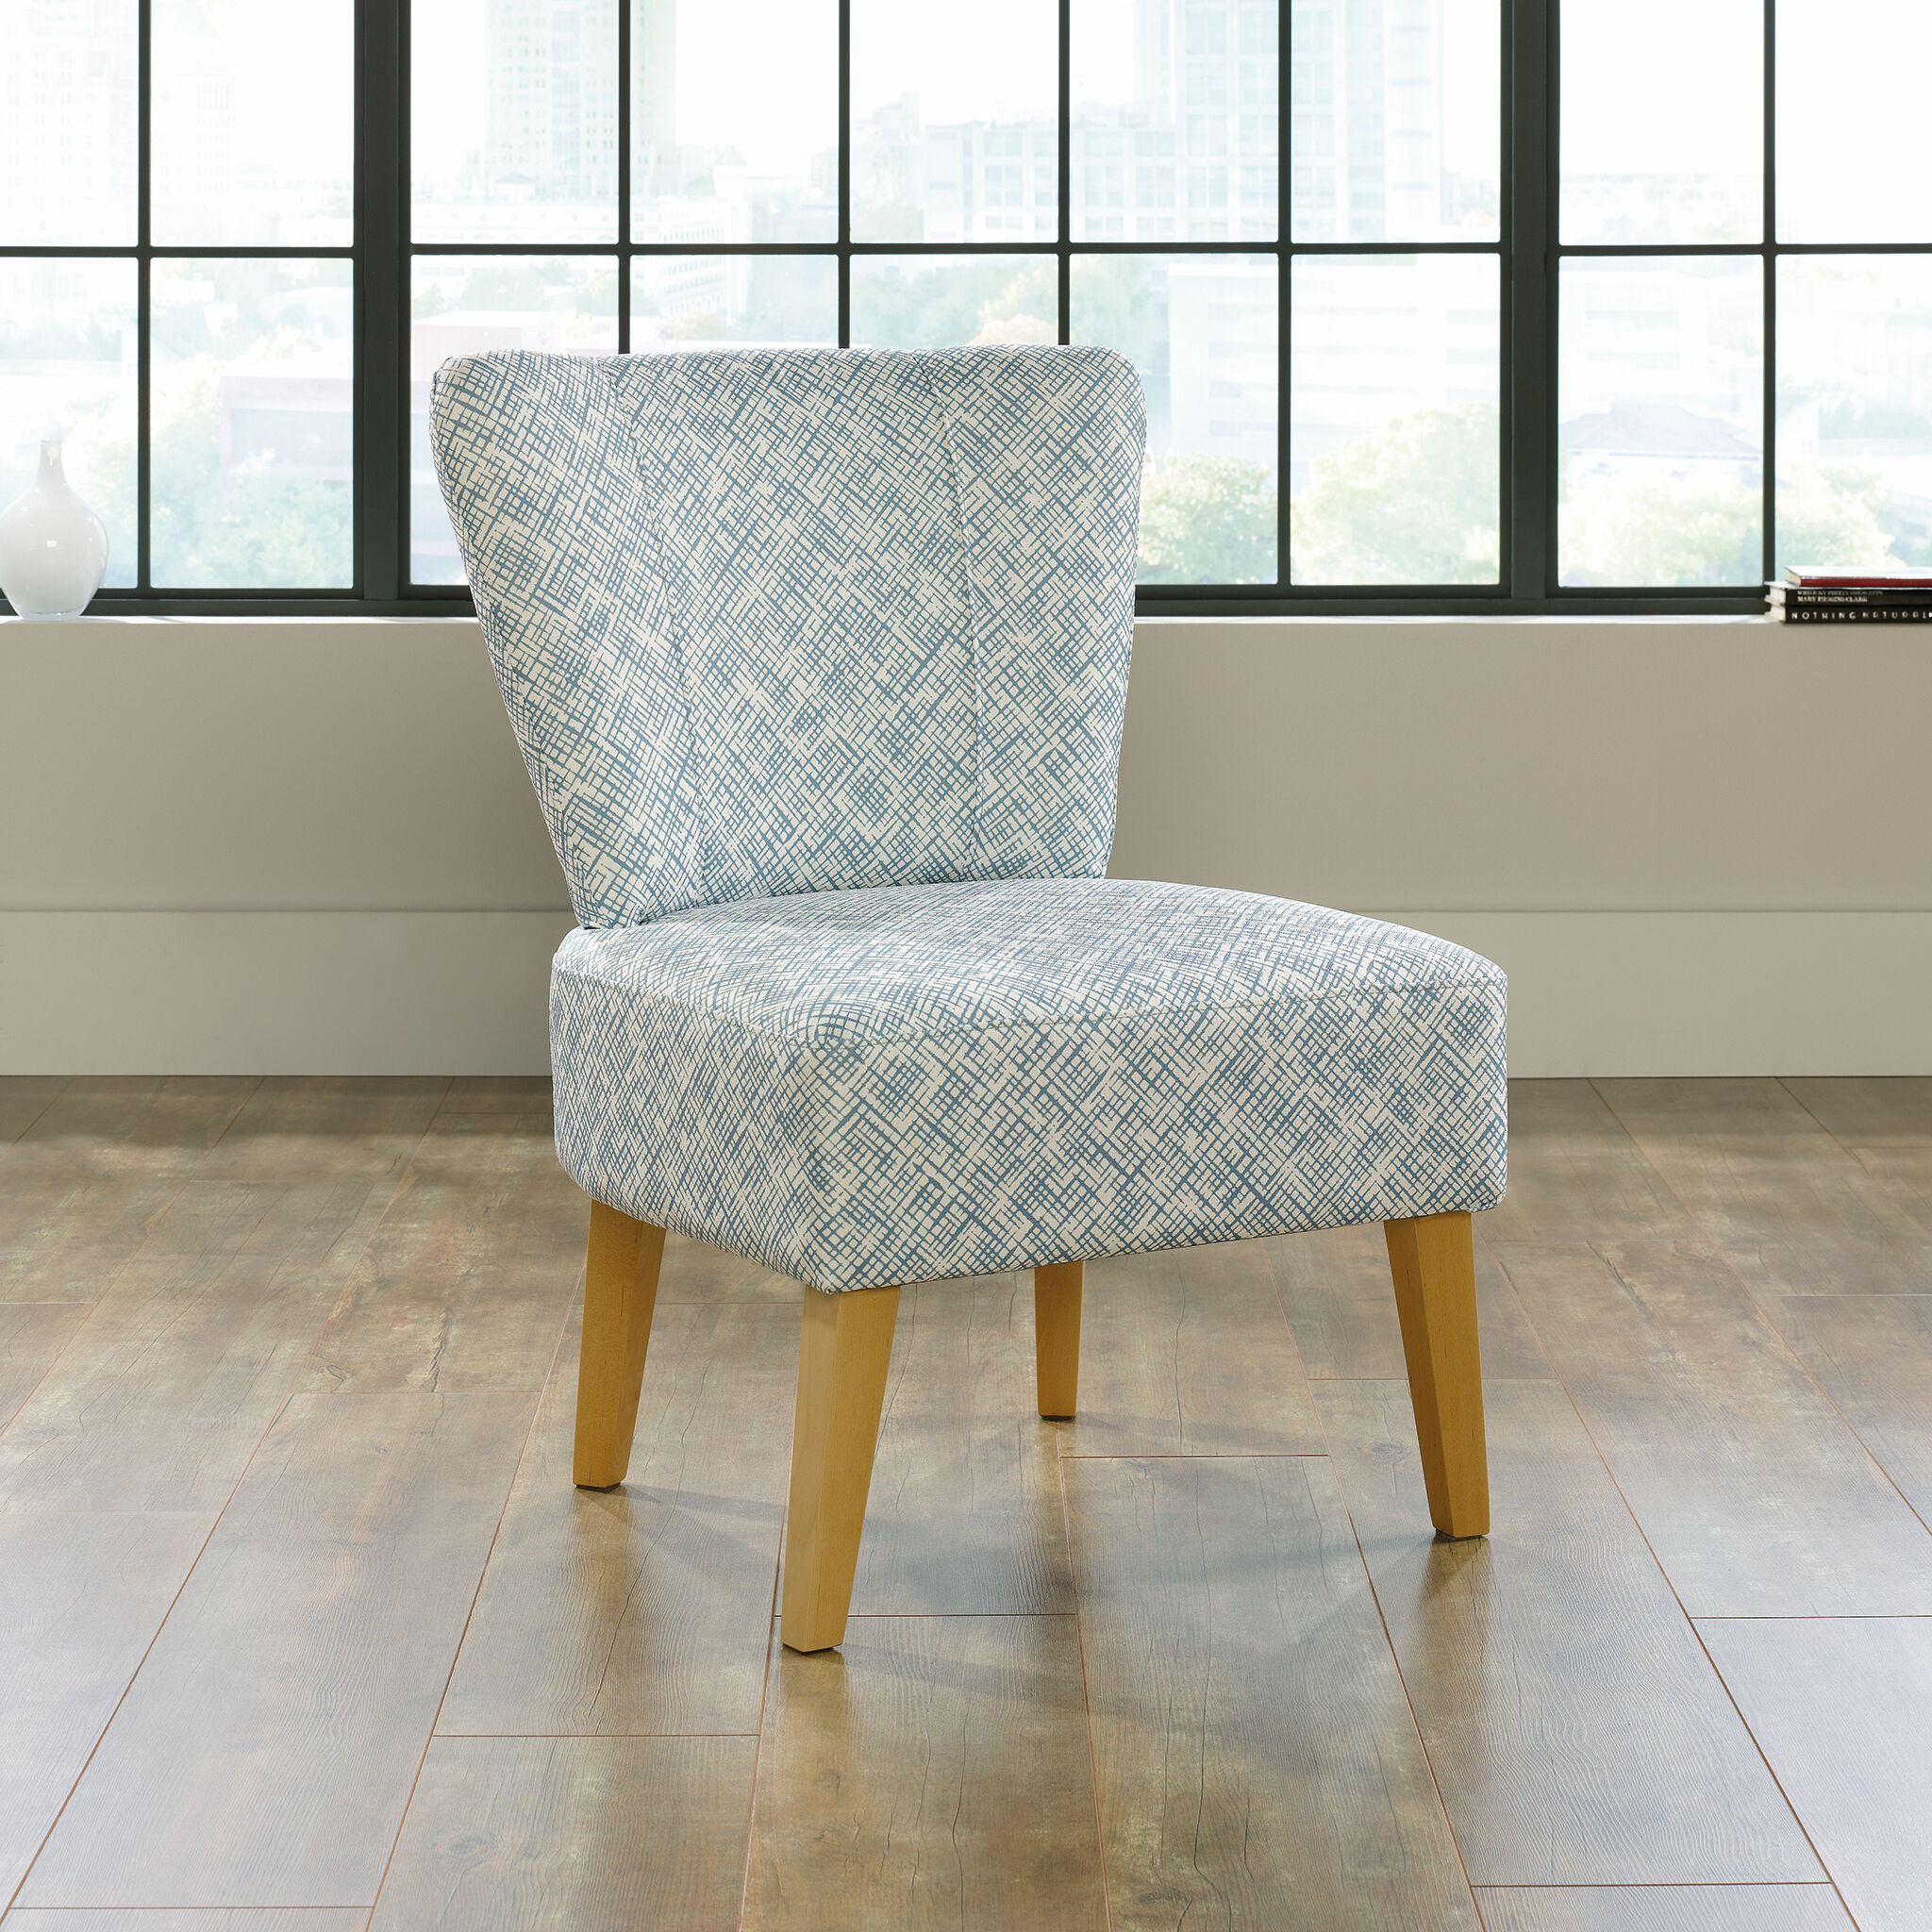 Mathis Brothers Chairs